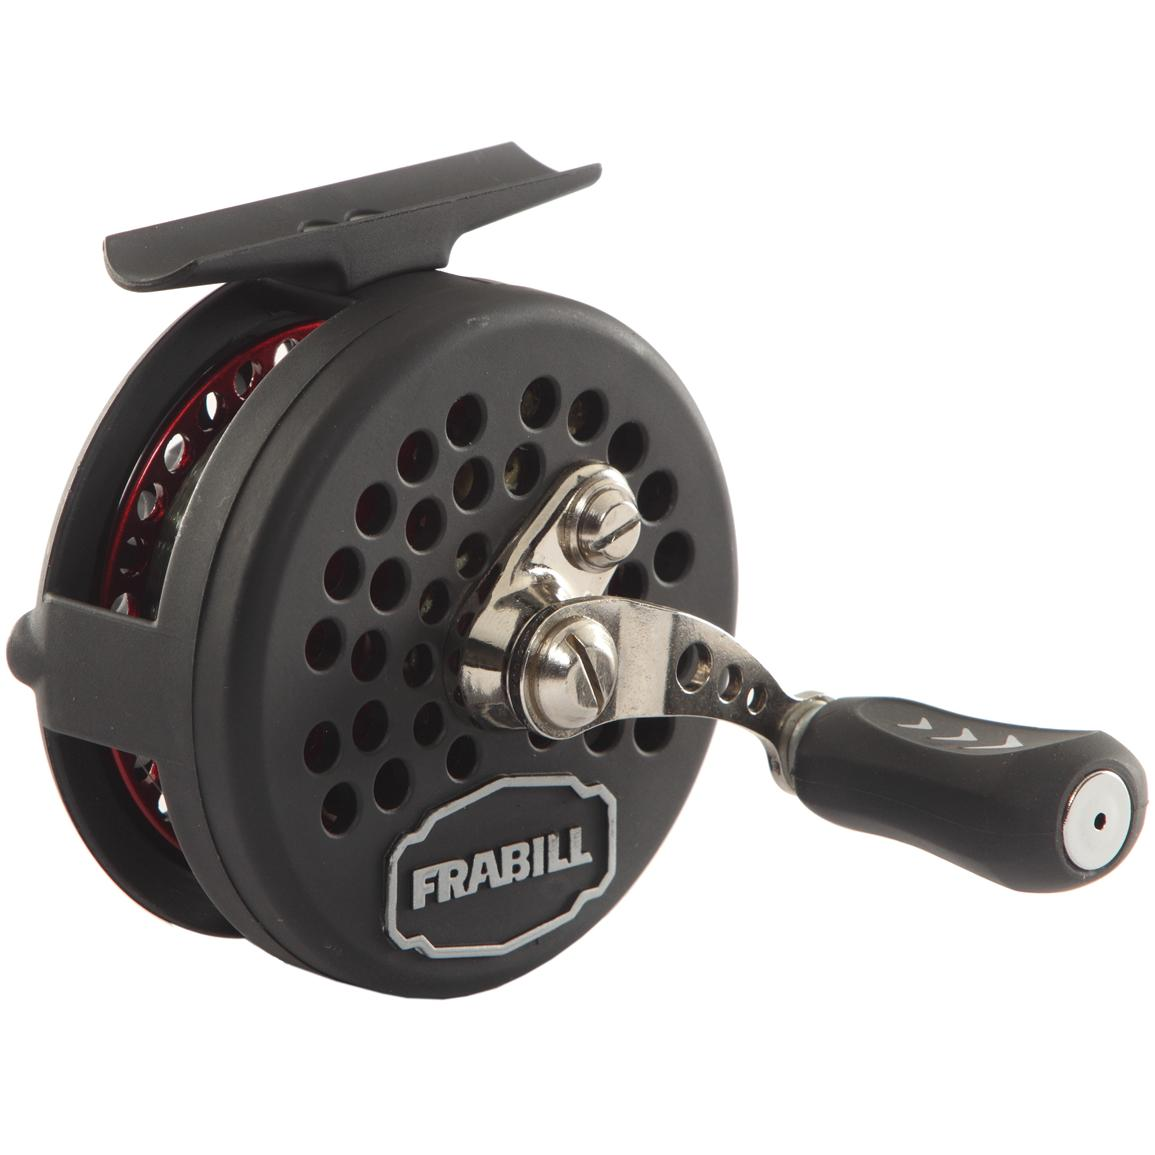 Frabill straight line 241 ice fishing reel 229920 ice for Best ice fishing reel